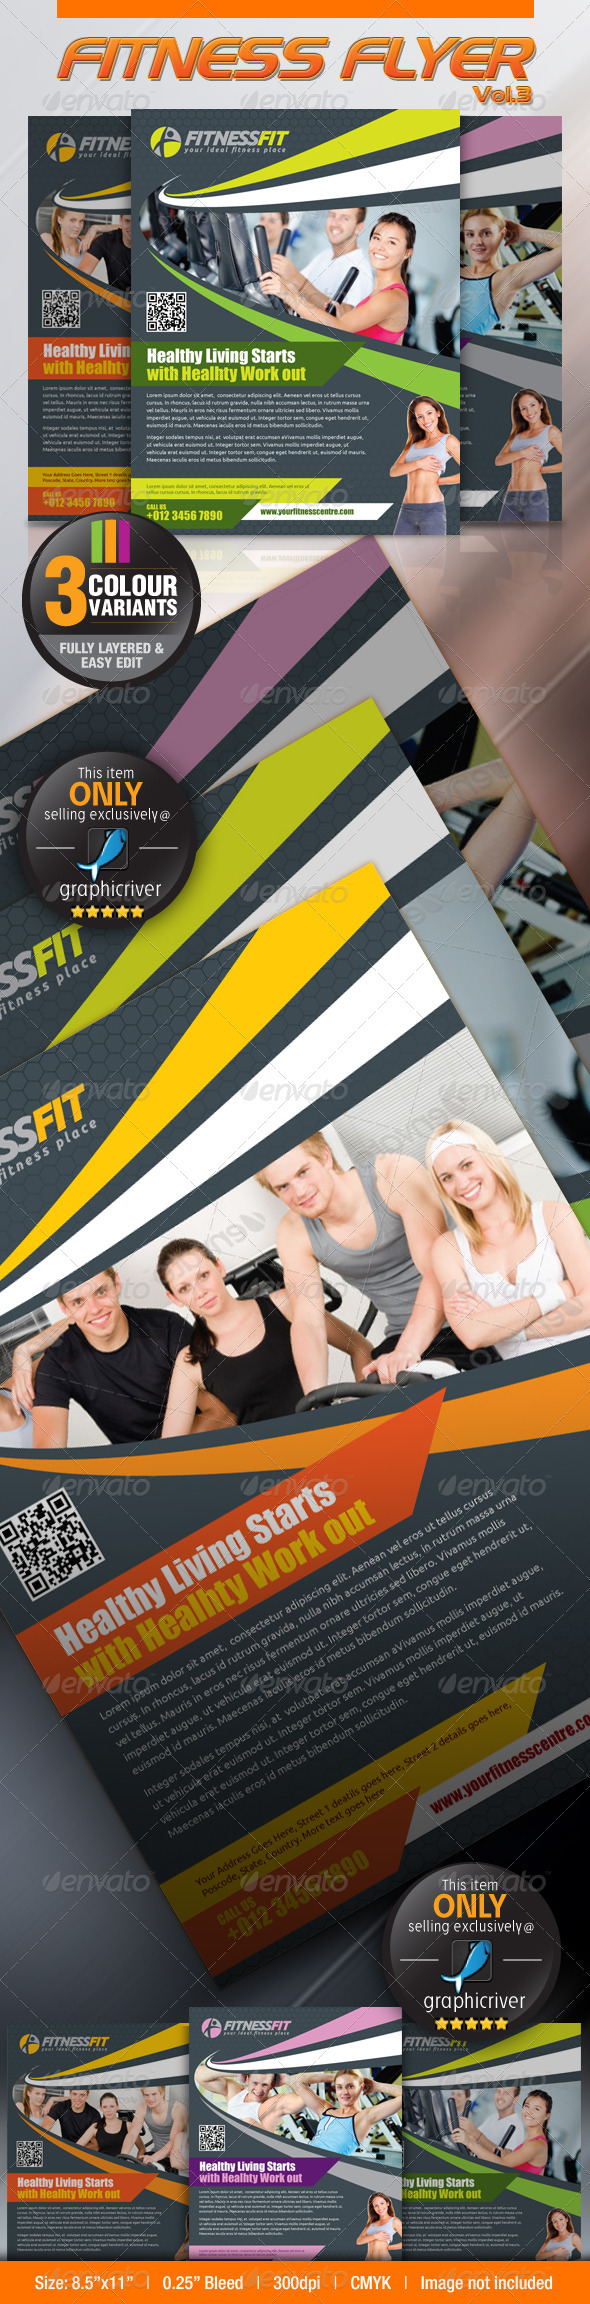 GraphicRiver Fitness Flyer Vol.3 2758427